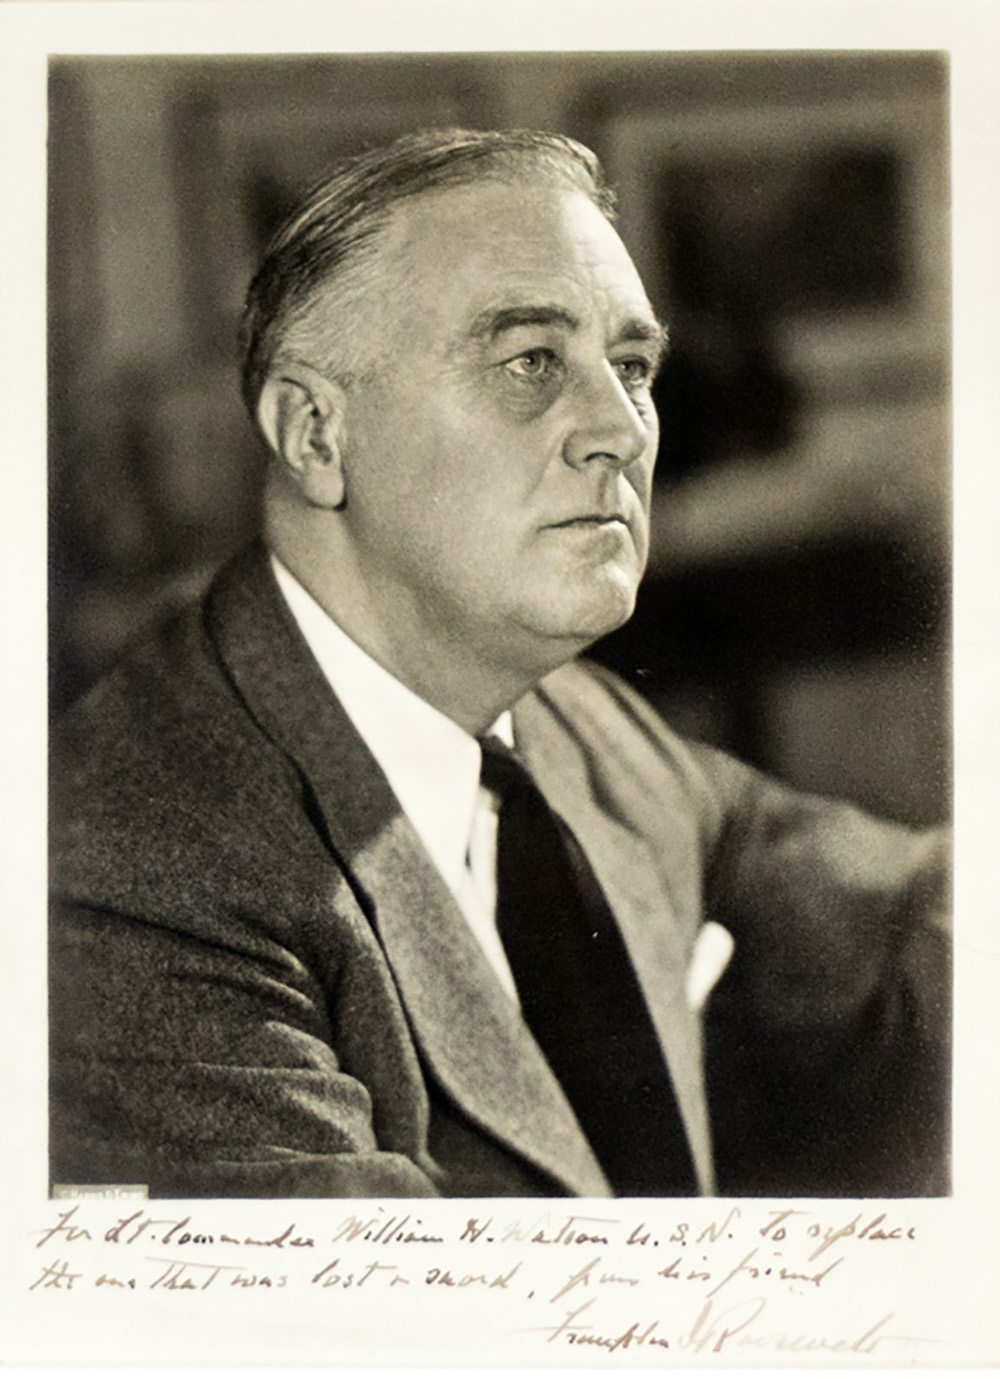 franklin d roosevelt essays Franklin delano roosevelt franklin d roosevelt, commonly known as fdr, was the 32nd president of the united states he helped the united states in a time.